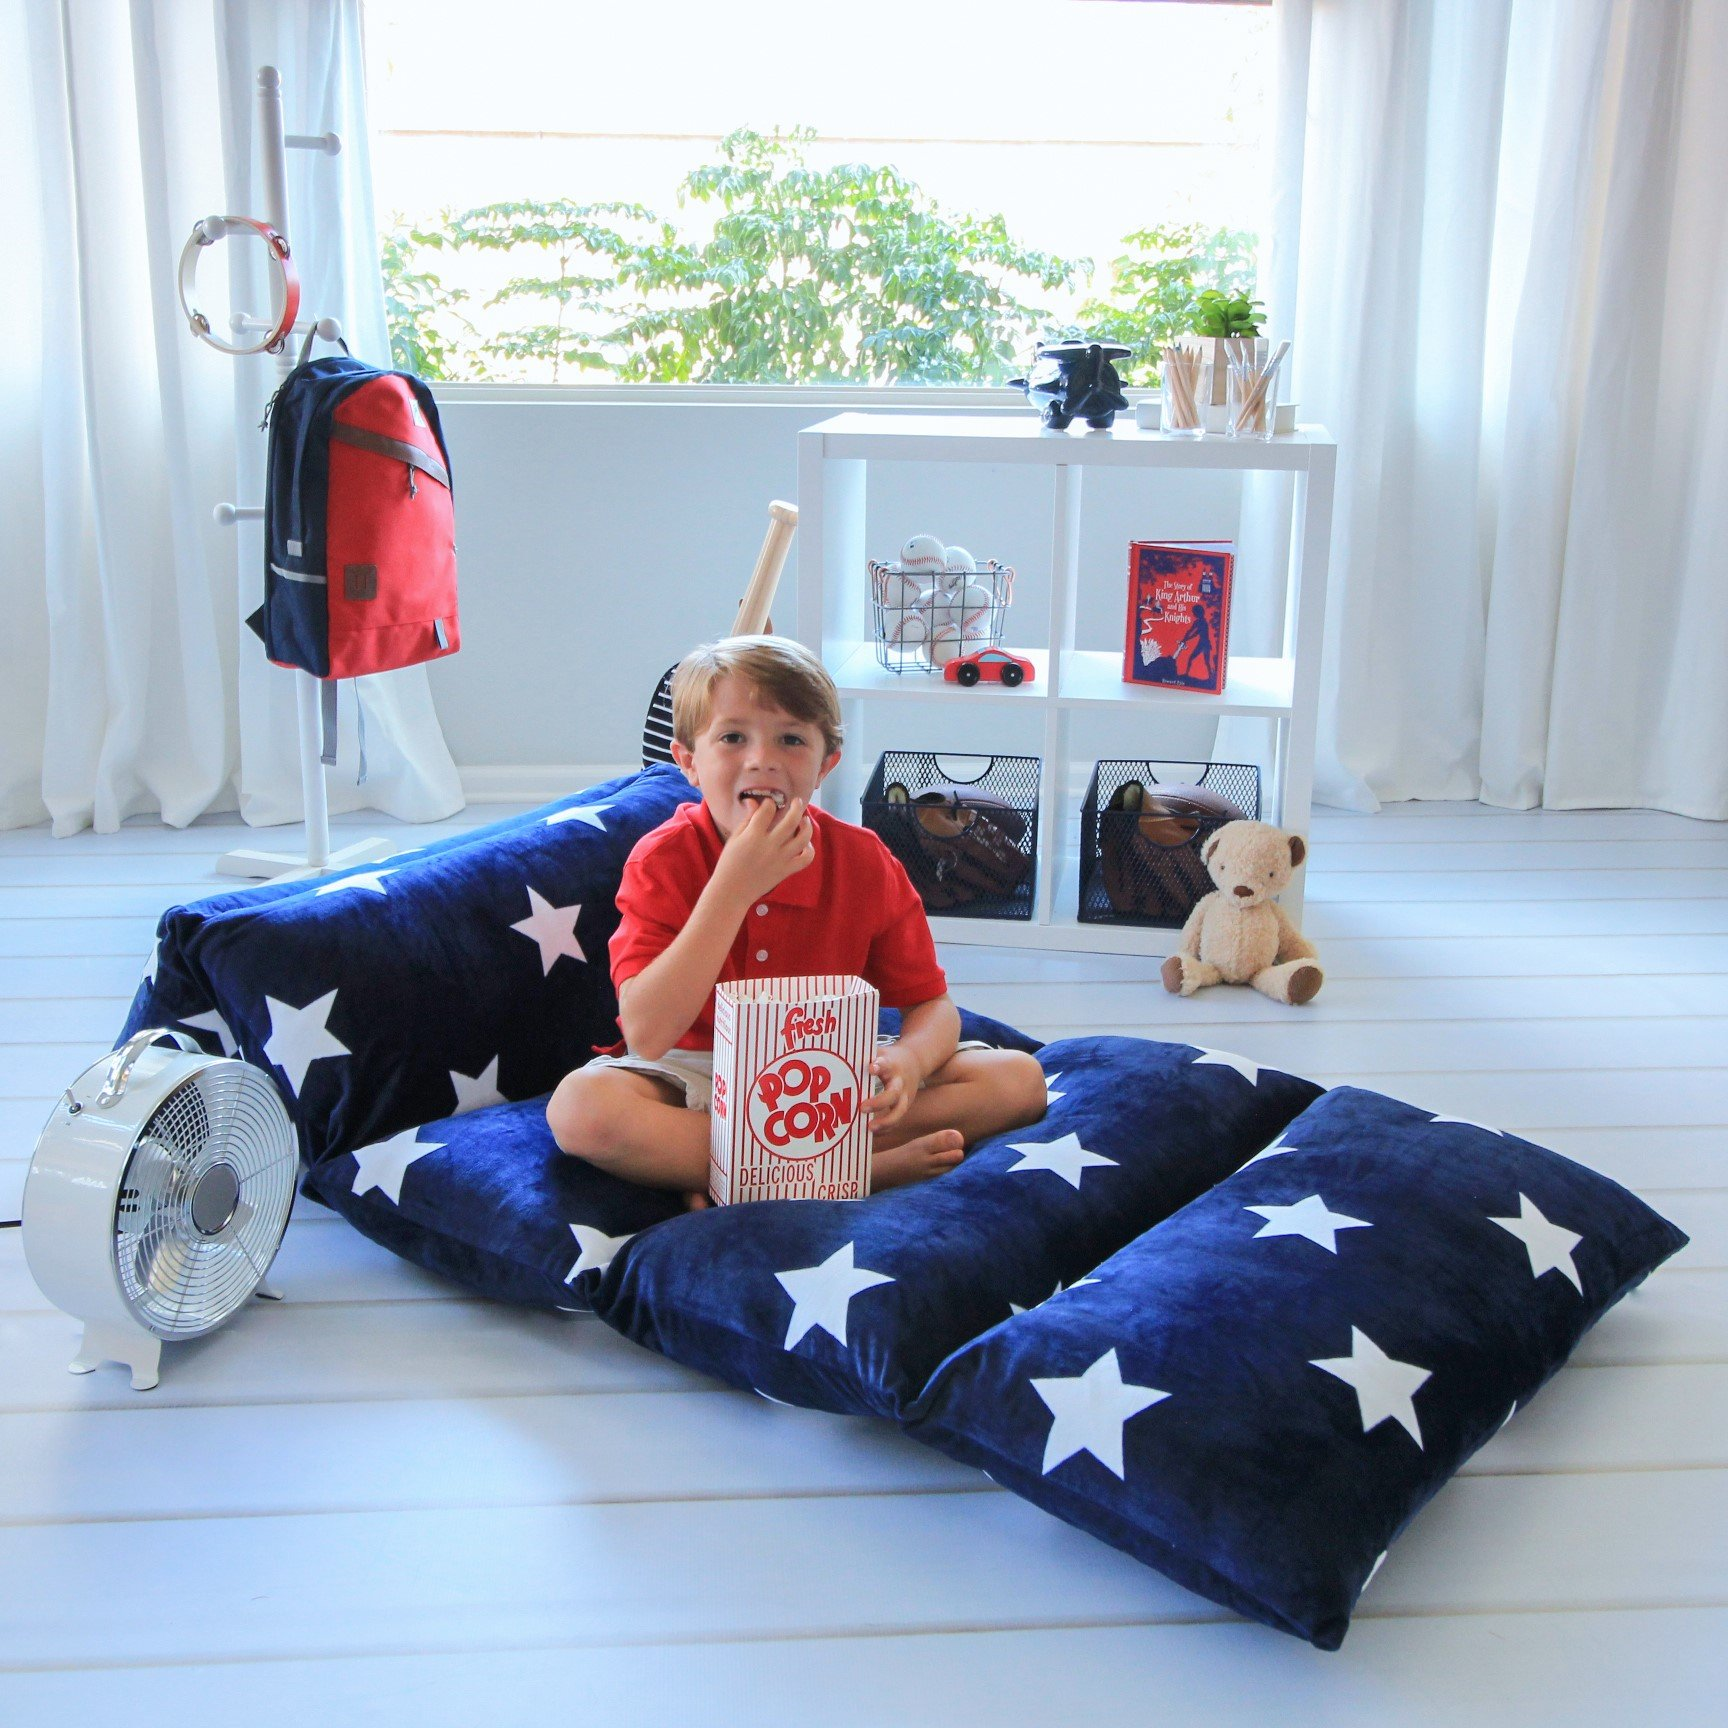 Butterfly Craze Kids Floor Pillow Fold Out Lounger Fabric Cover for Bed and Game Rooms, Reading, Beanbag, Ottoman, Recliner, Chair, Couch Alternative. Blue. Queen Pillows Not Included by Butterfly Craze (Image #8)